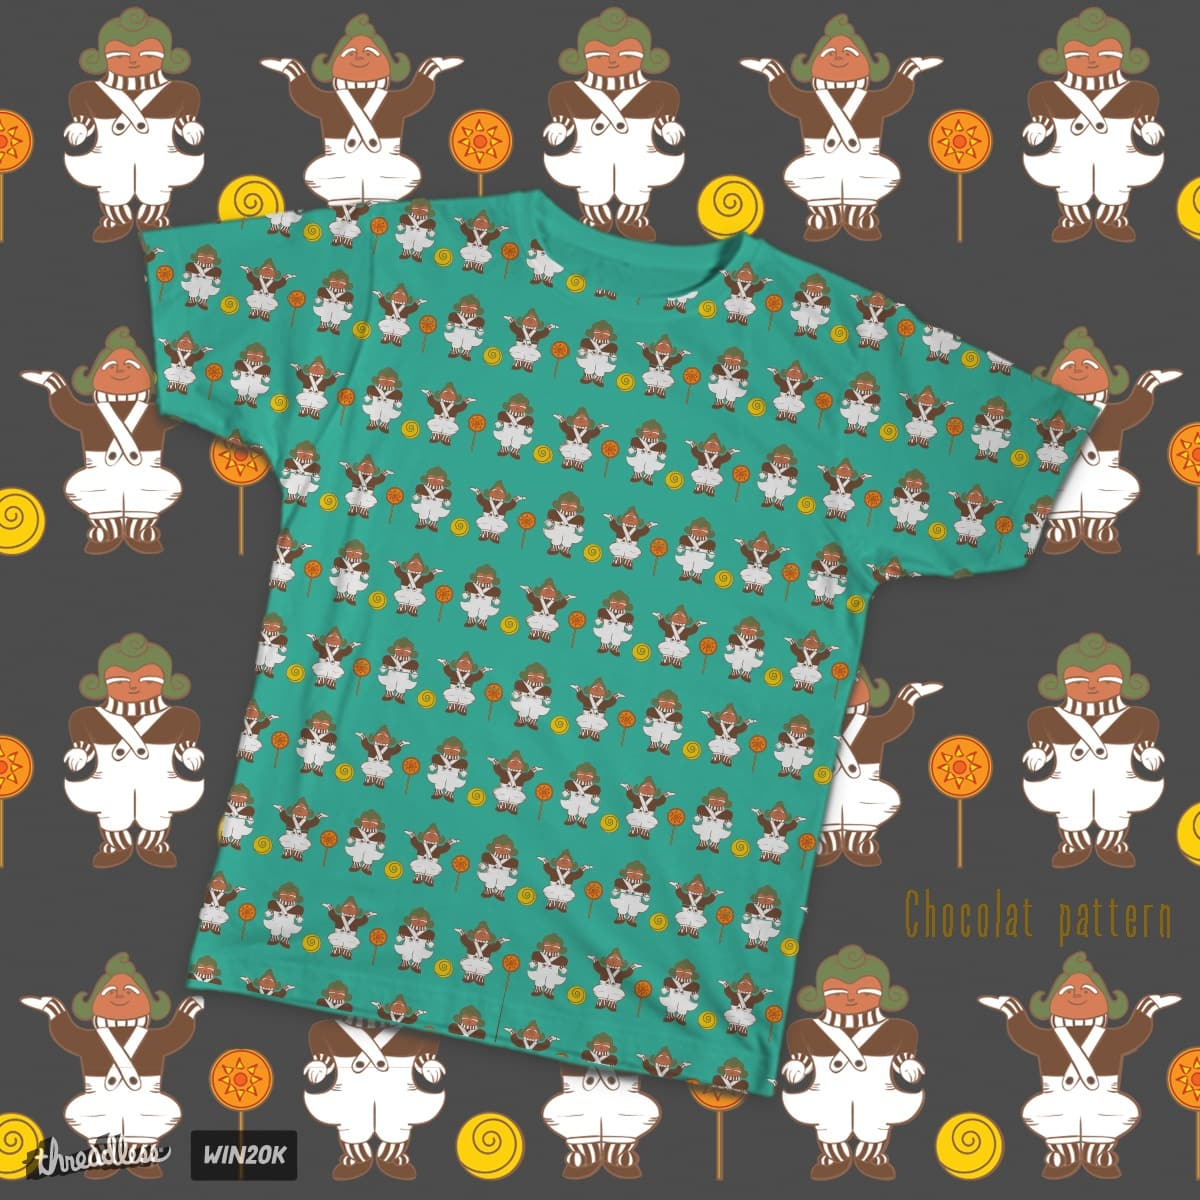 Chocolat pattern by LiliOstrovsky on Threadless